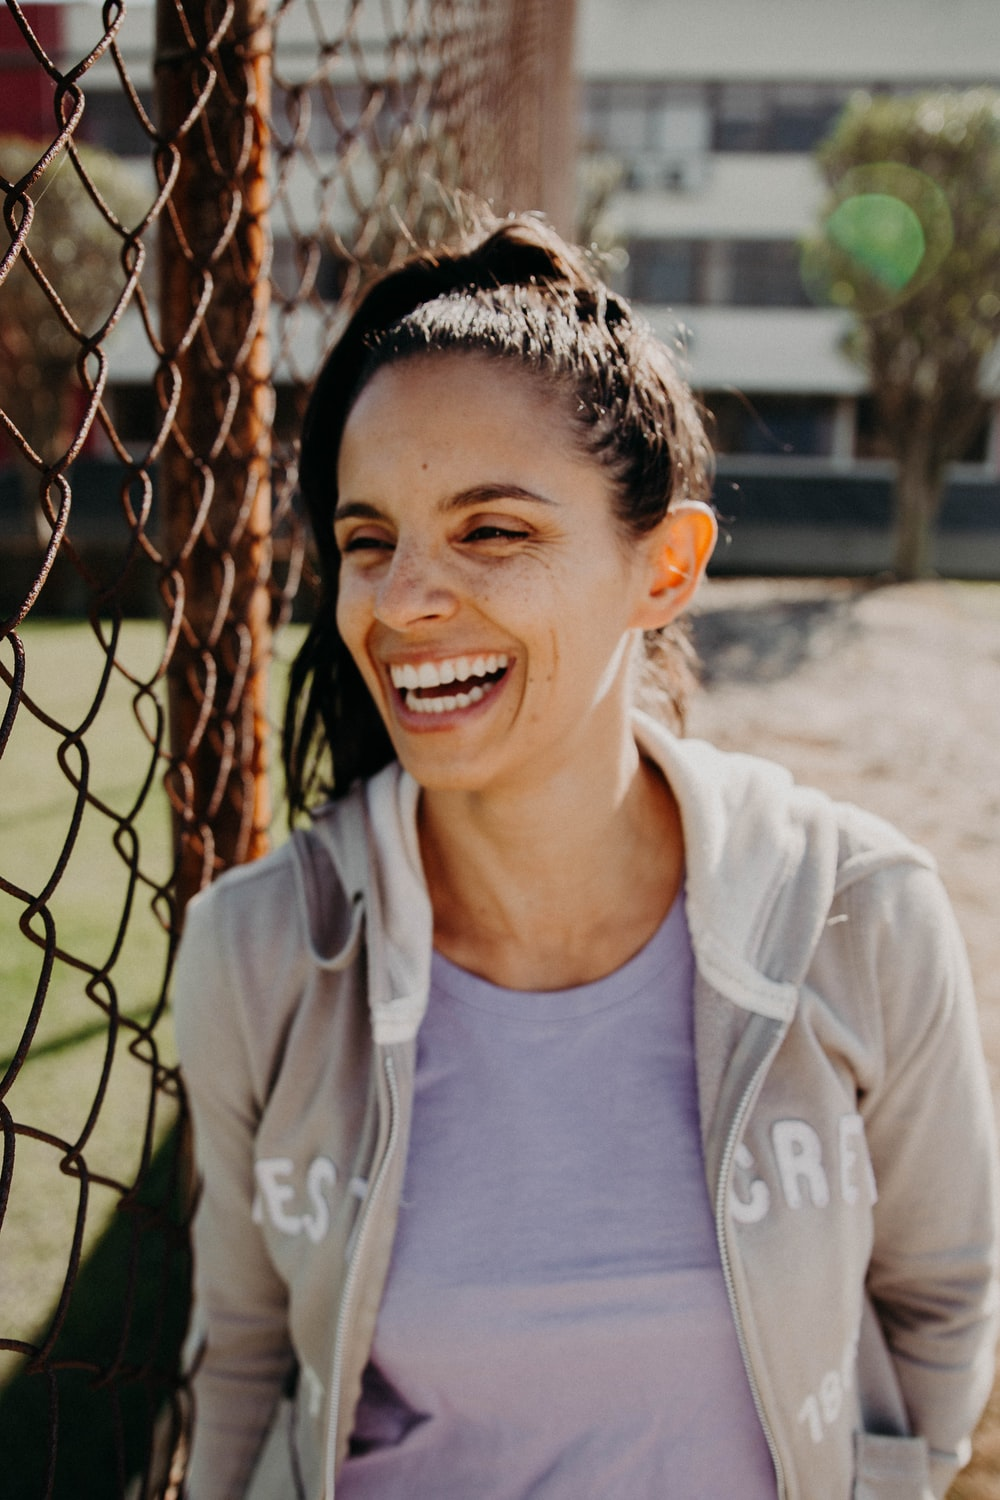 smiling woman wearing gray zip-up pullover hoodie standing near brown metal chain link fence during daytime